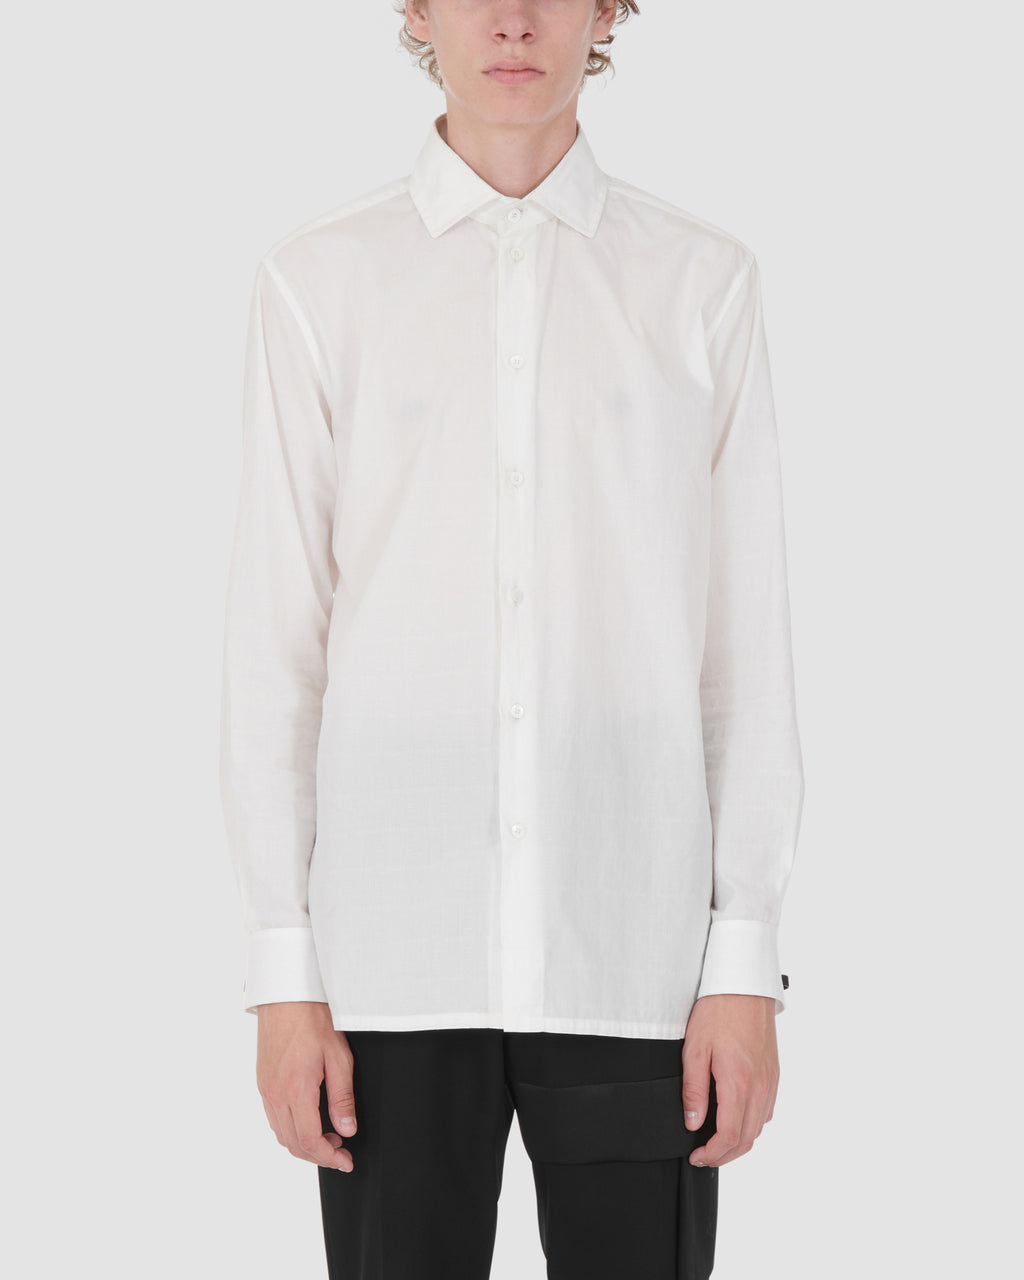 1017 ALYX 9SM | CLASSIC BUTTON UP | Shirt | Google Shopping, Man, MEN, S20, Shirts, SS20, TOPS & SHIRTS, WHITE